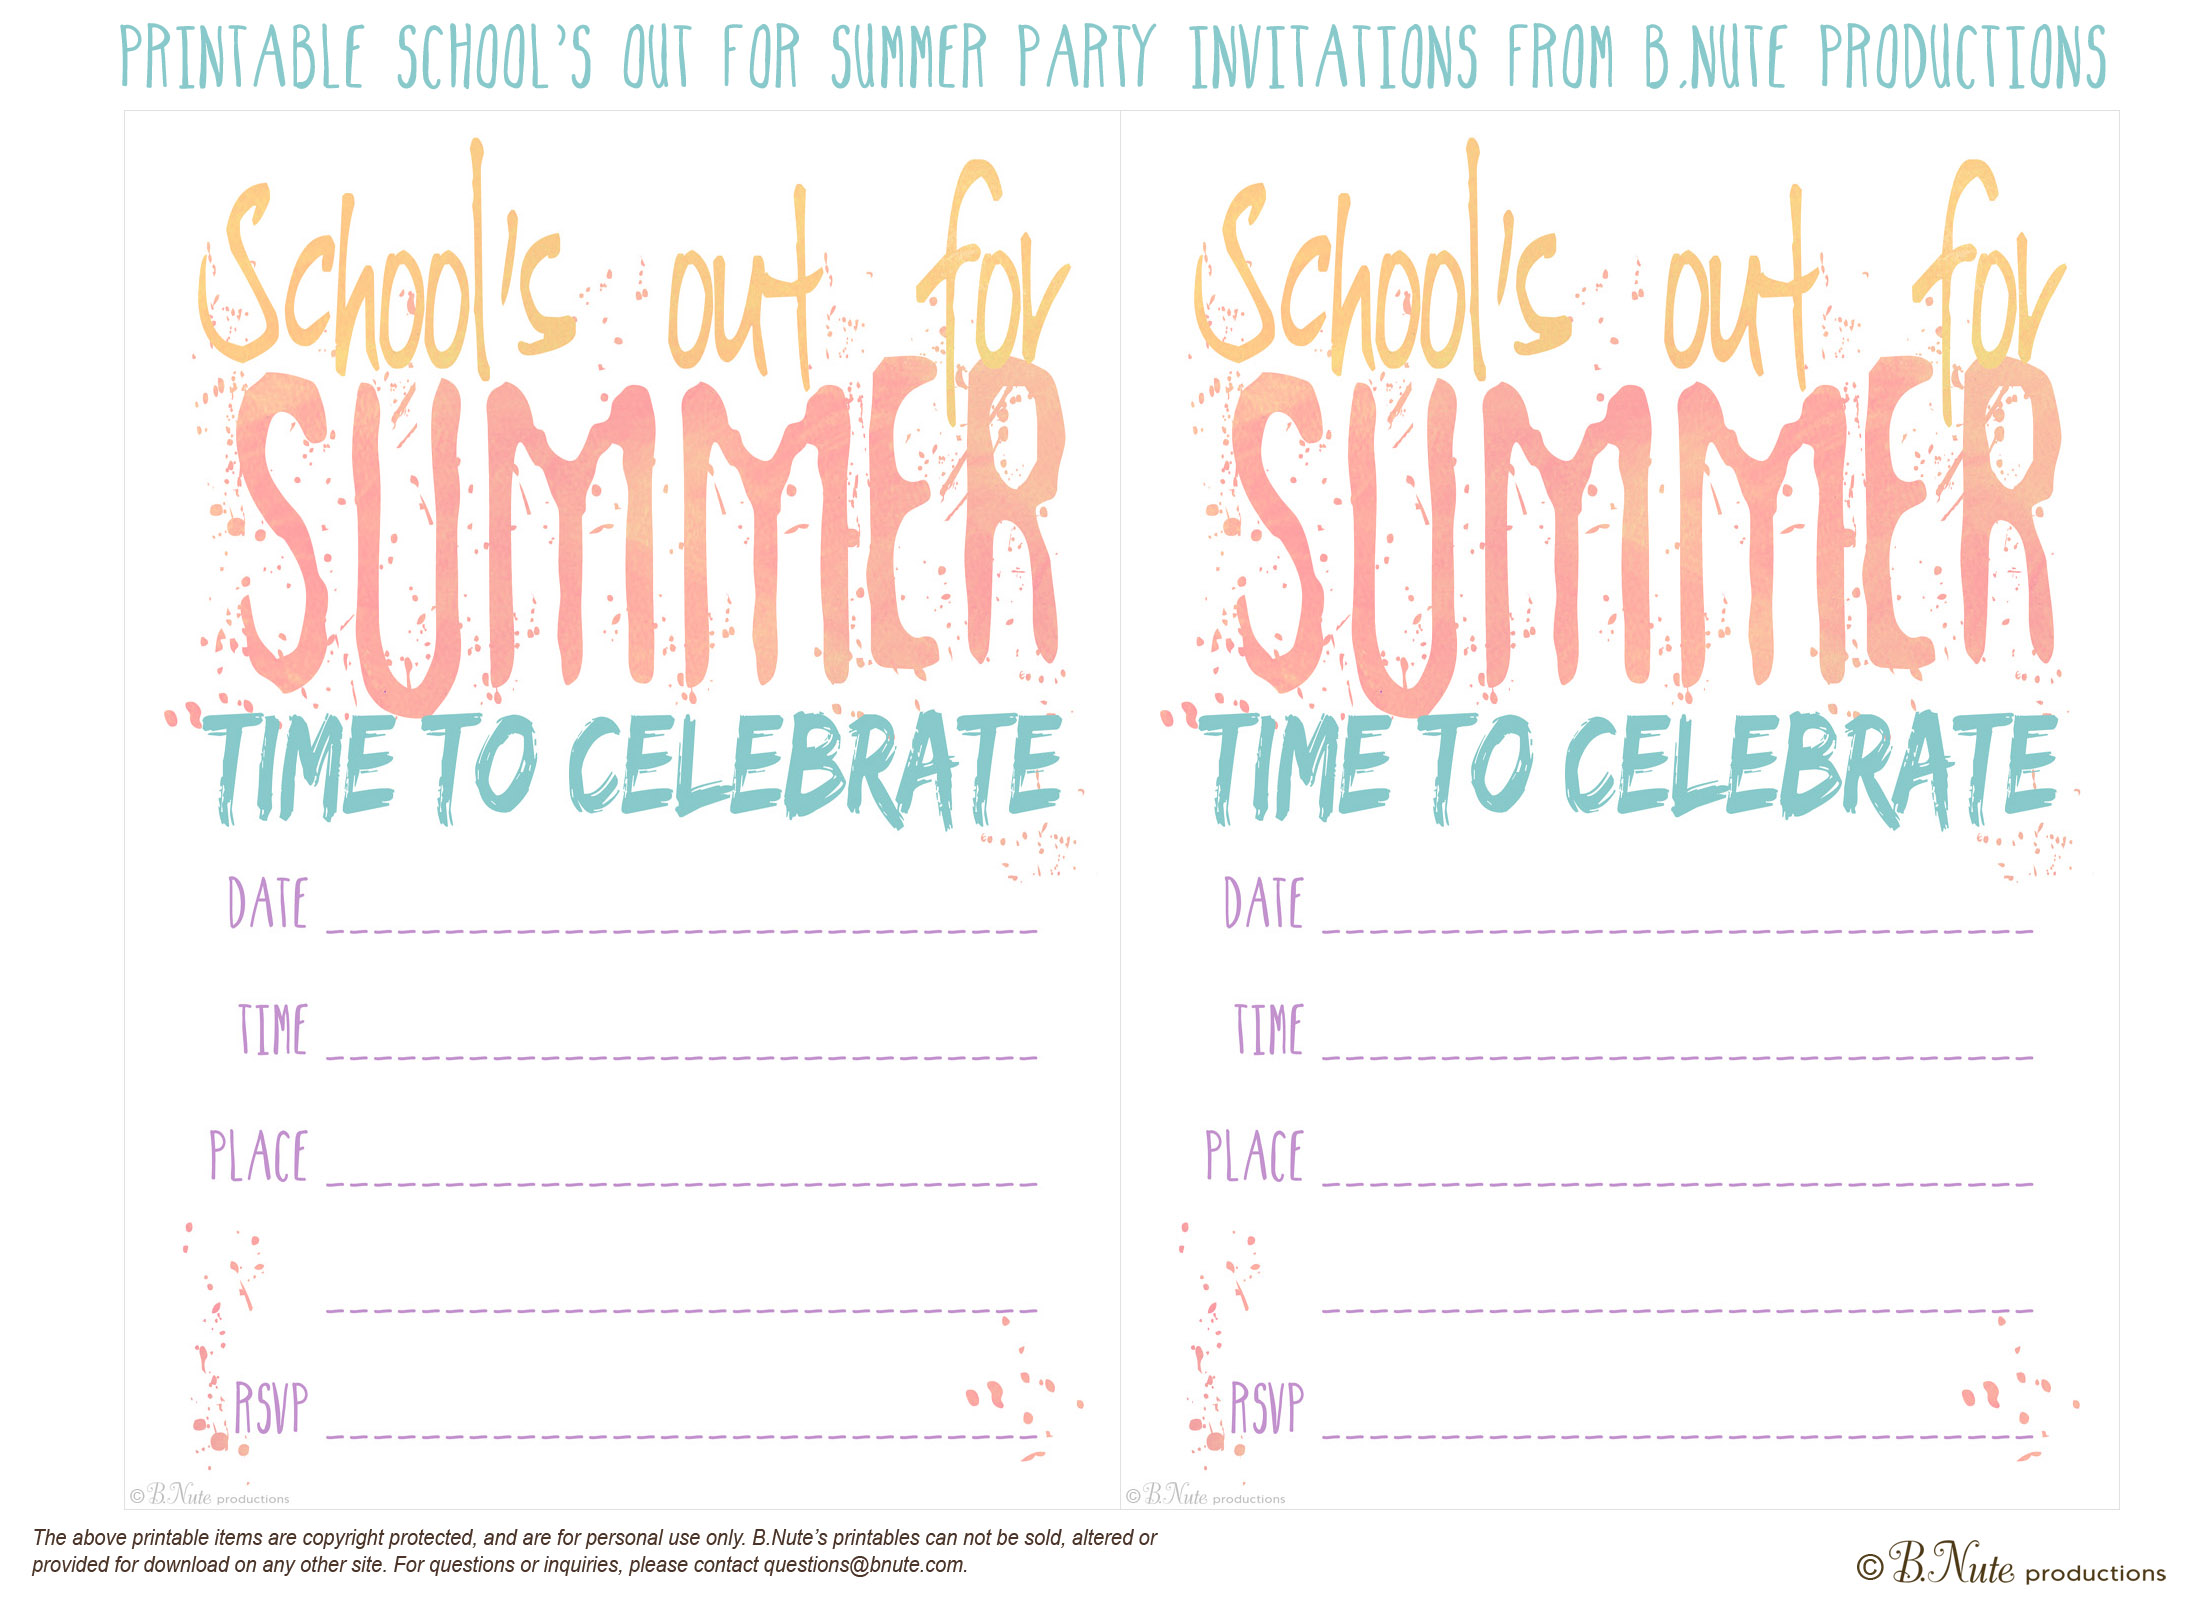 bnute productions printable school s out for summer party printable school s out for summer party invitations by b nute productions